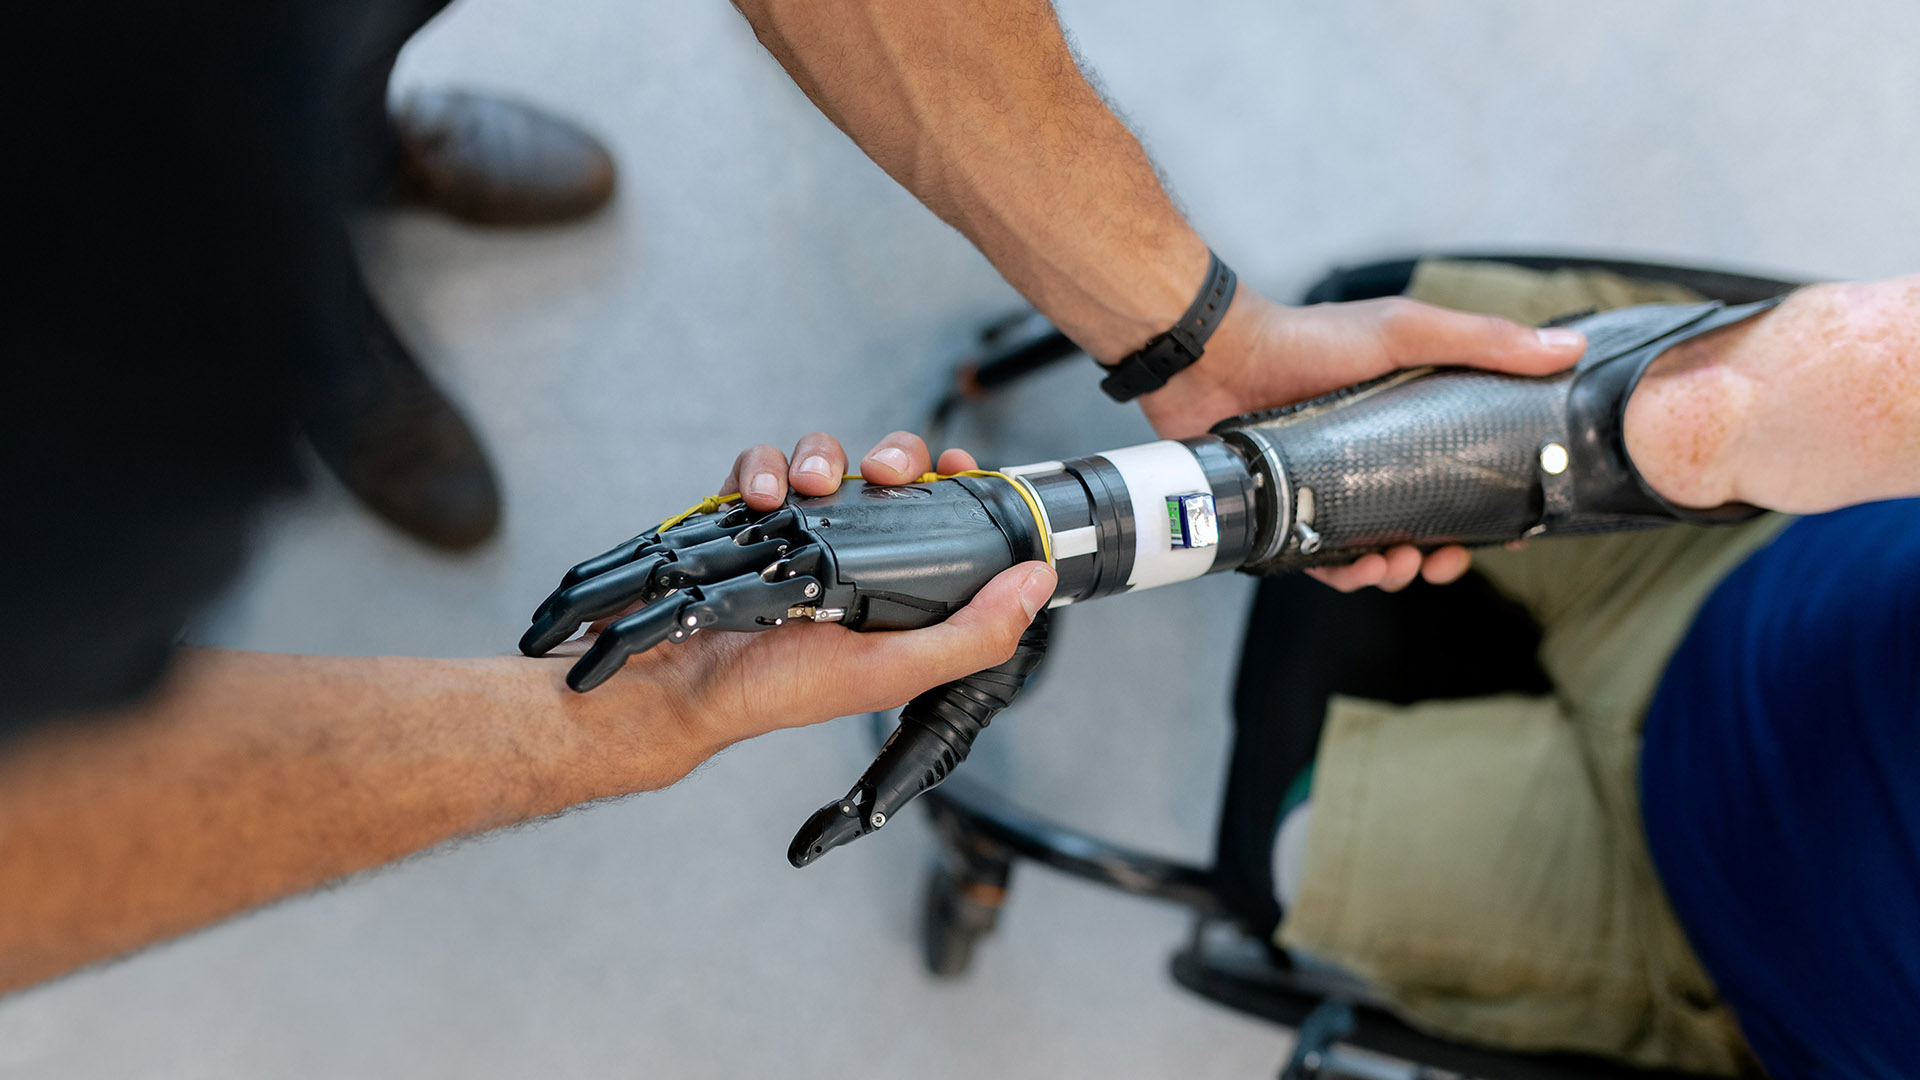 bioengineered arm for person with disability. The person is sitting on a wheelchair.